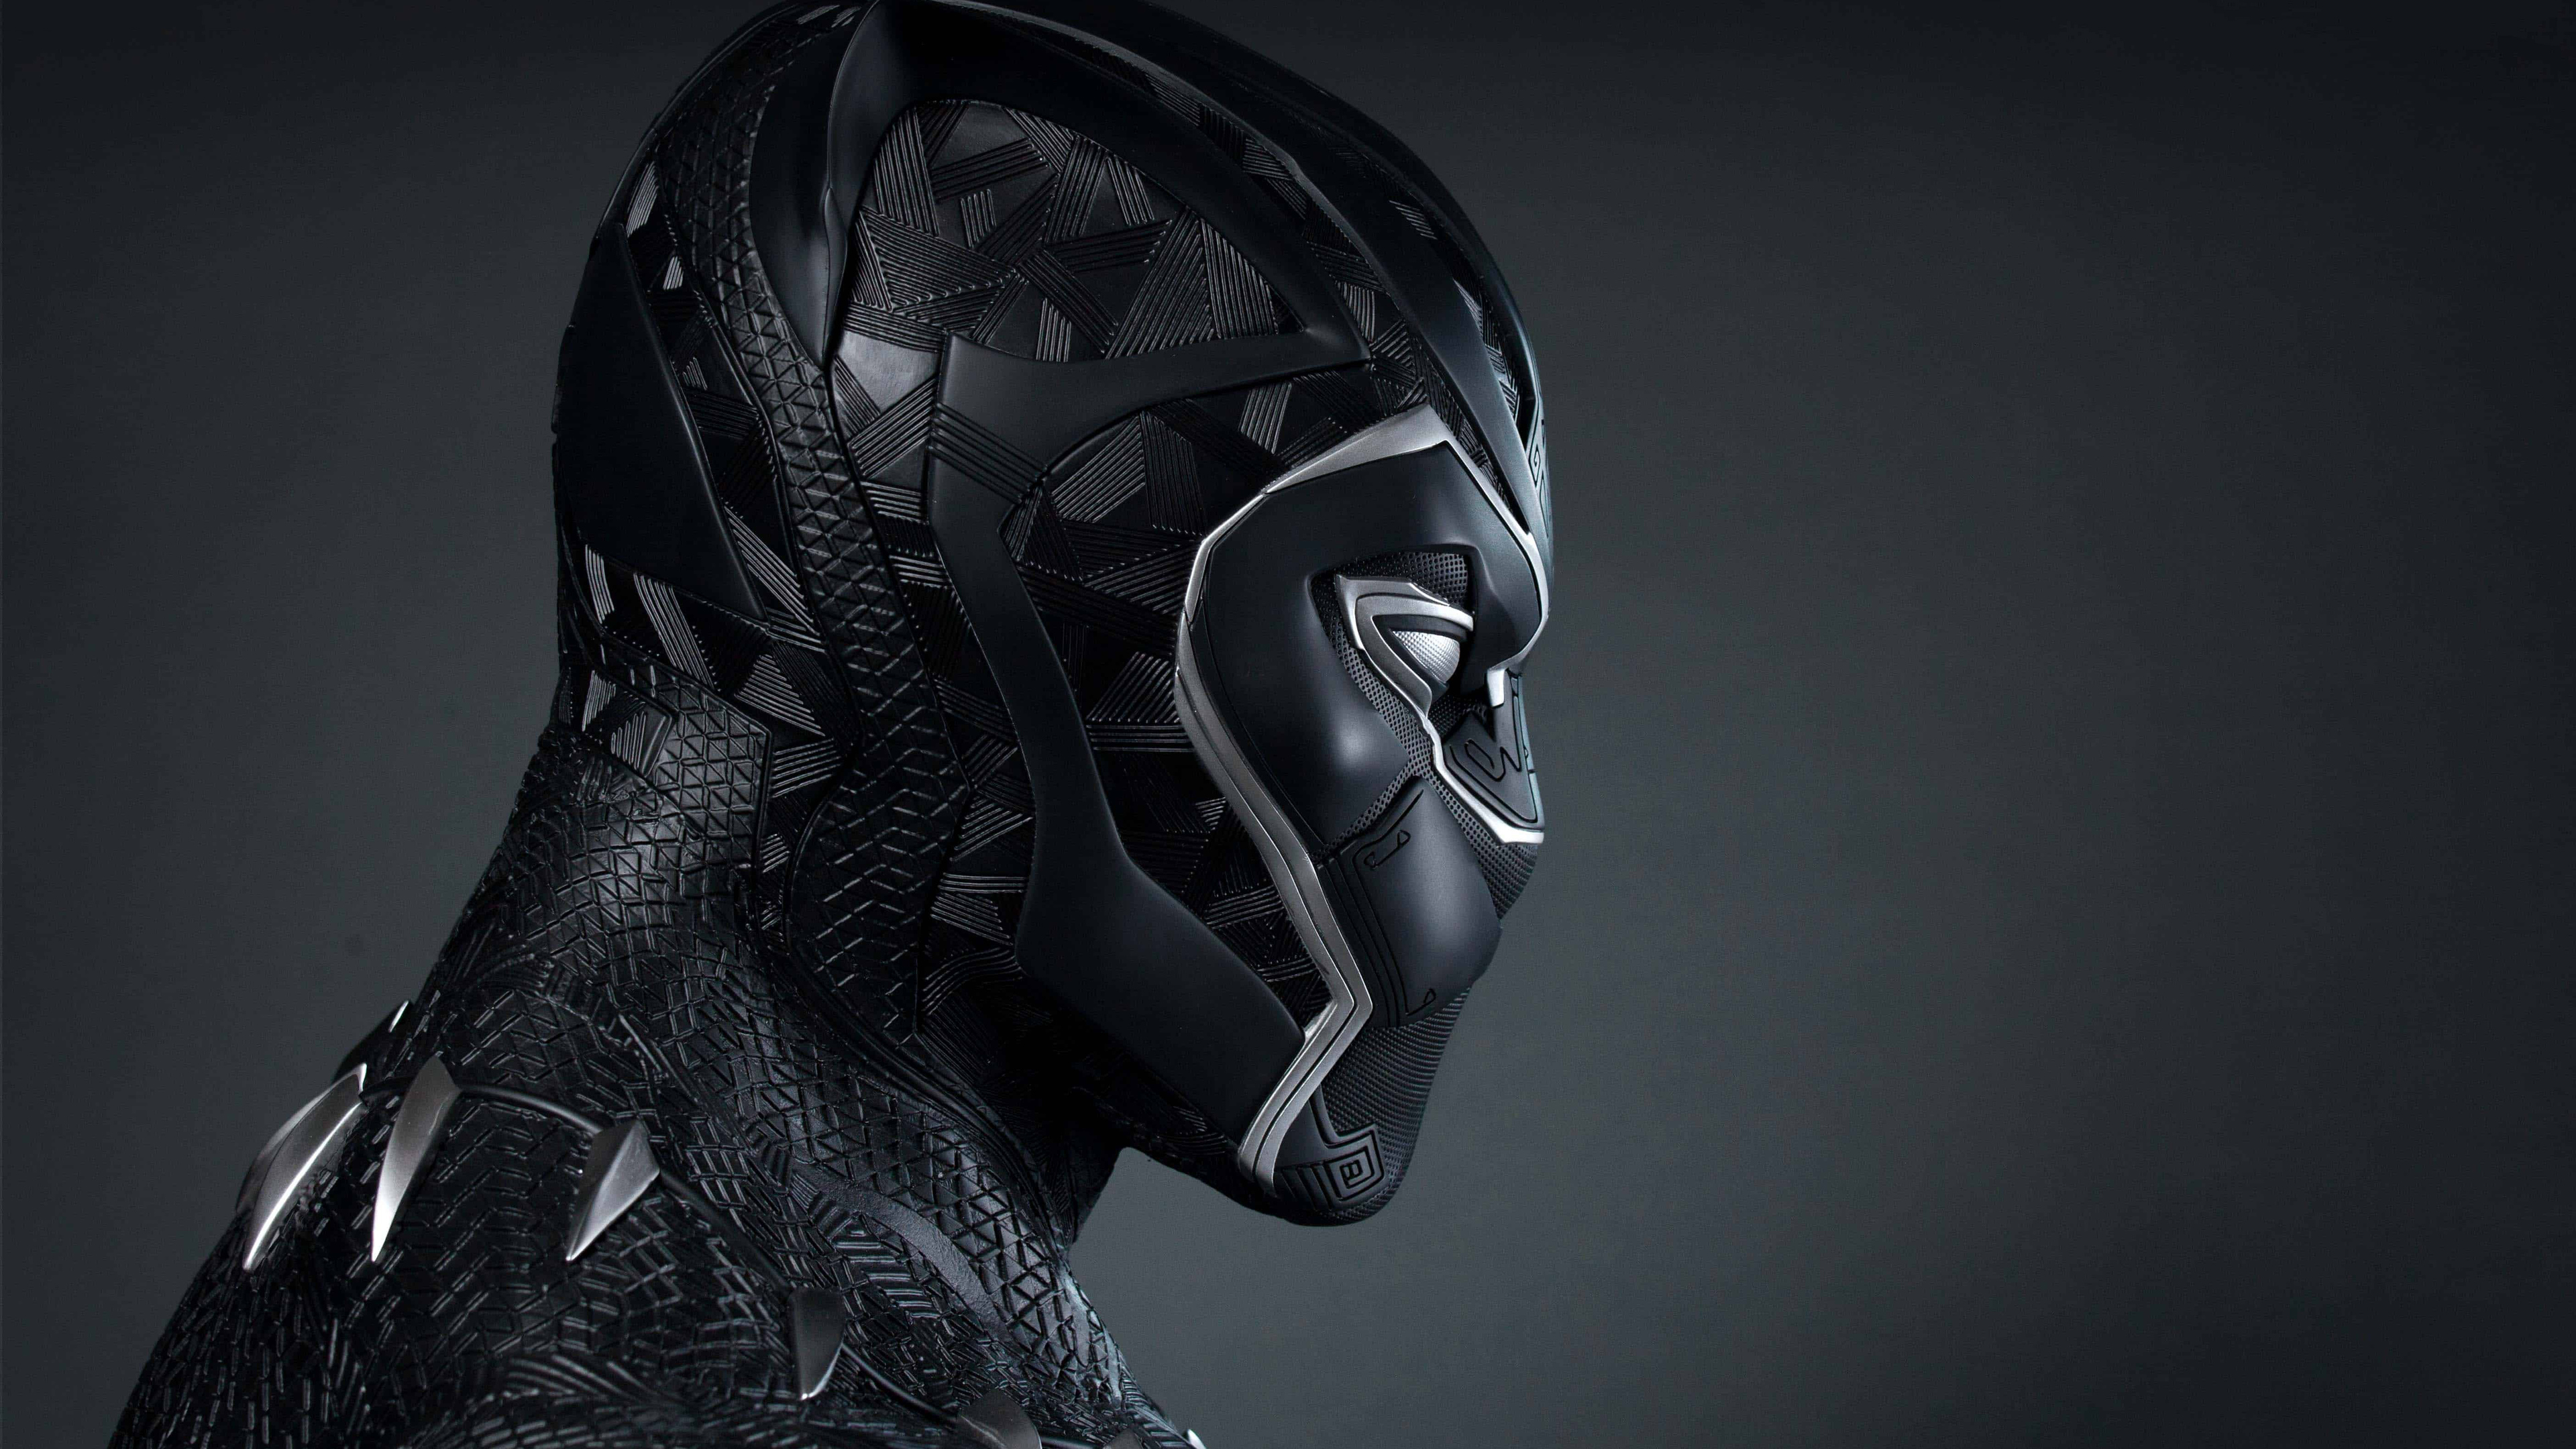 black panther new 2019 1569186552 - Black Panther New 2019 - superheroes wallpapers, hd-wallpapers, black panther wallpapers, 5k wallpapers, 4k-wallpapers